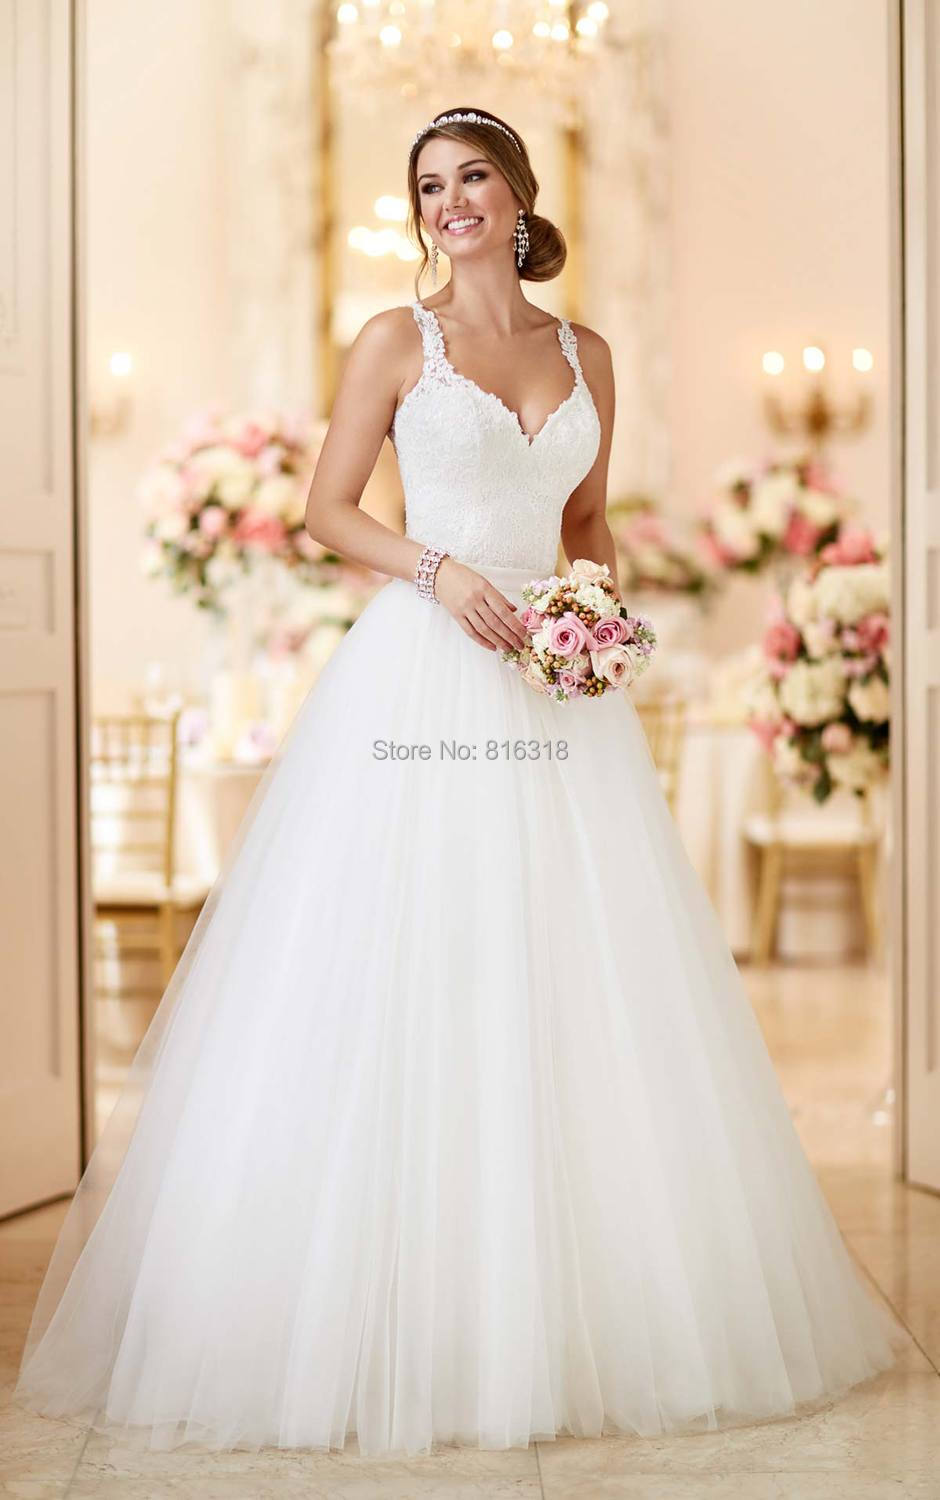 de56d85b1bf Spaghetti Straps Detachable Skirt Wedding Dress Tulle and Lace ...